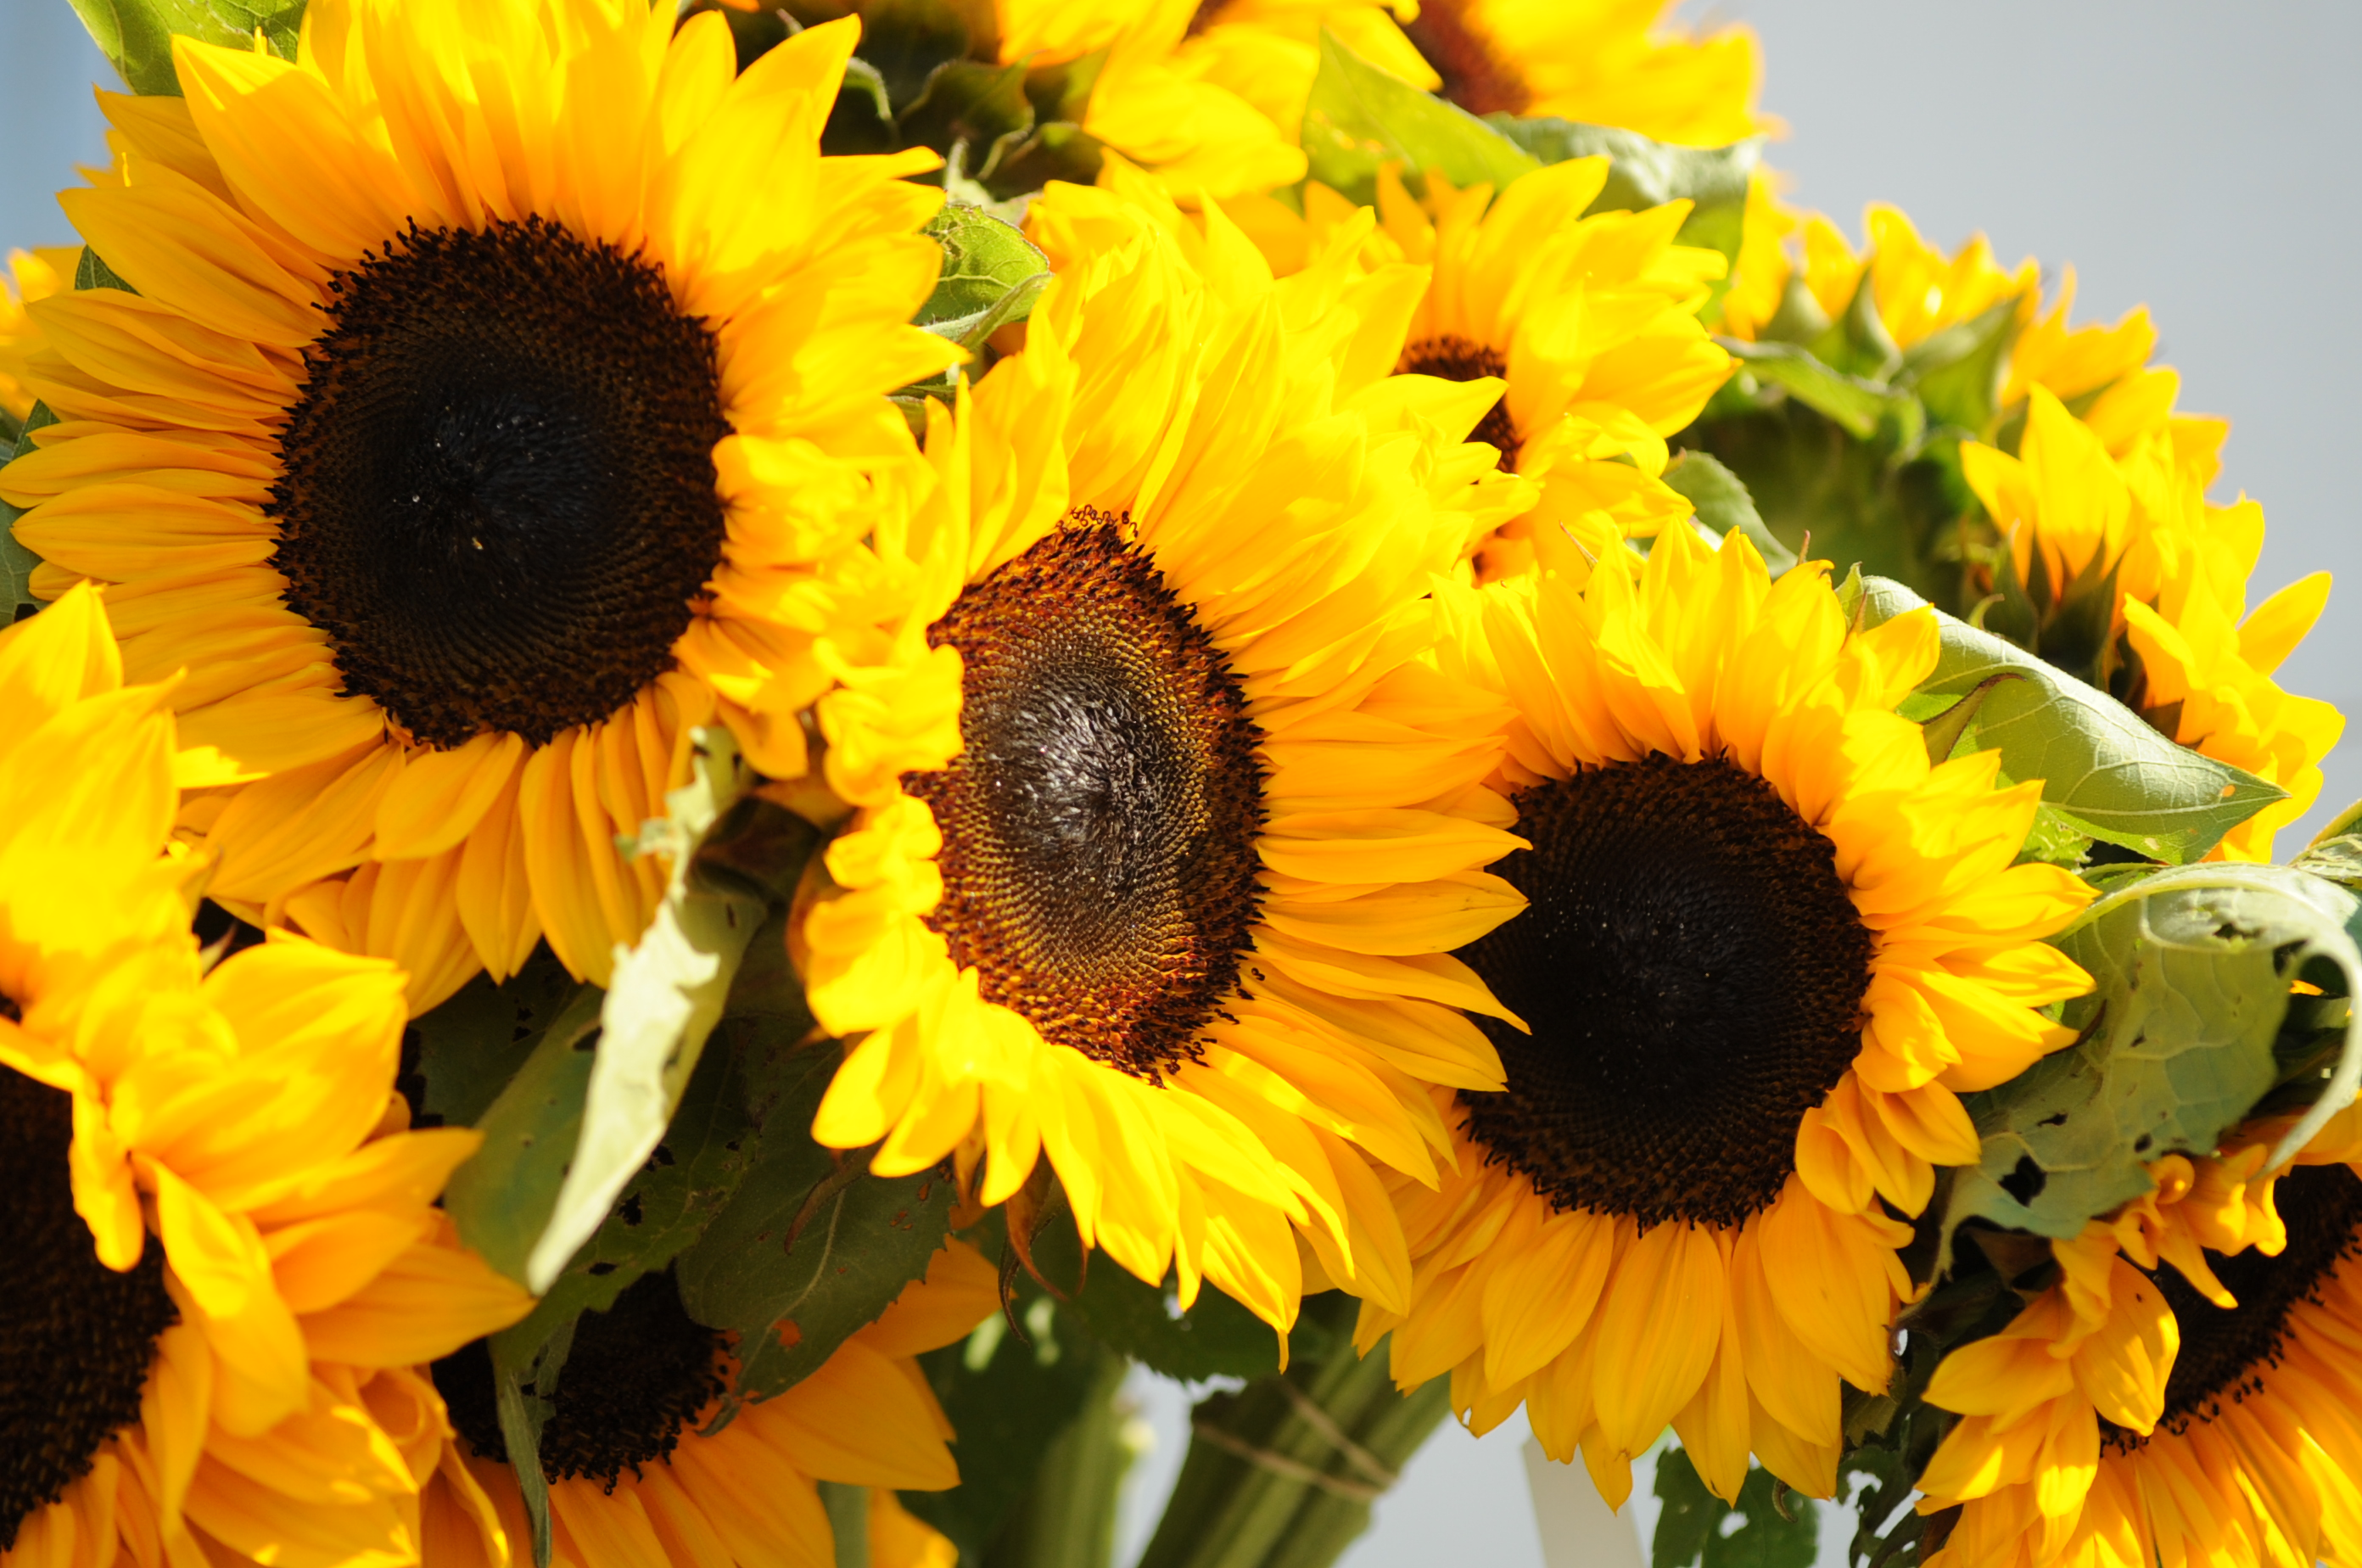 Our own sunflowers